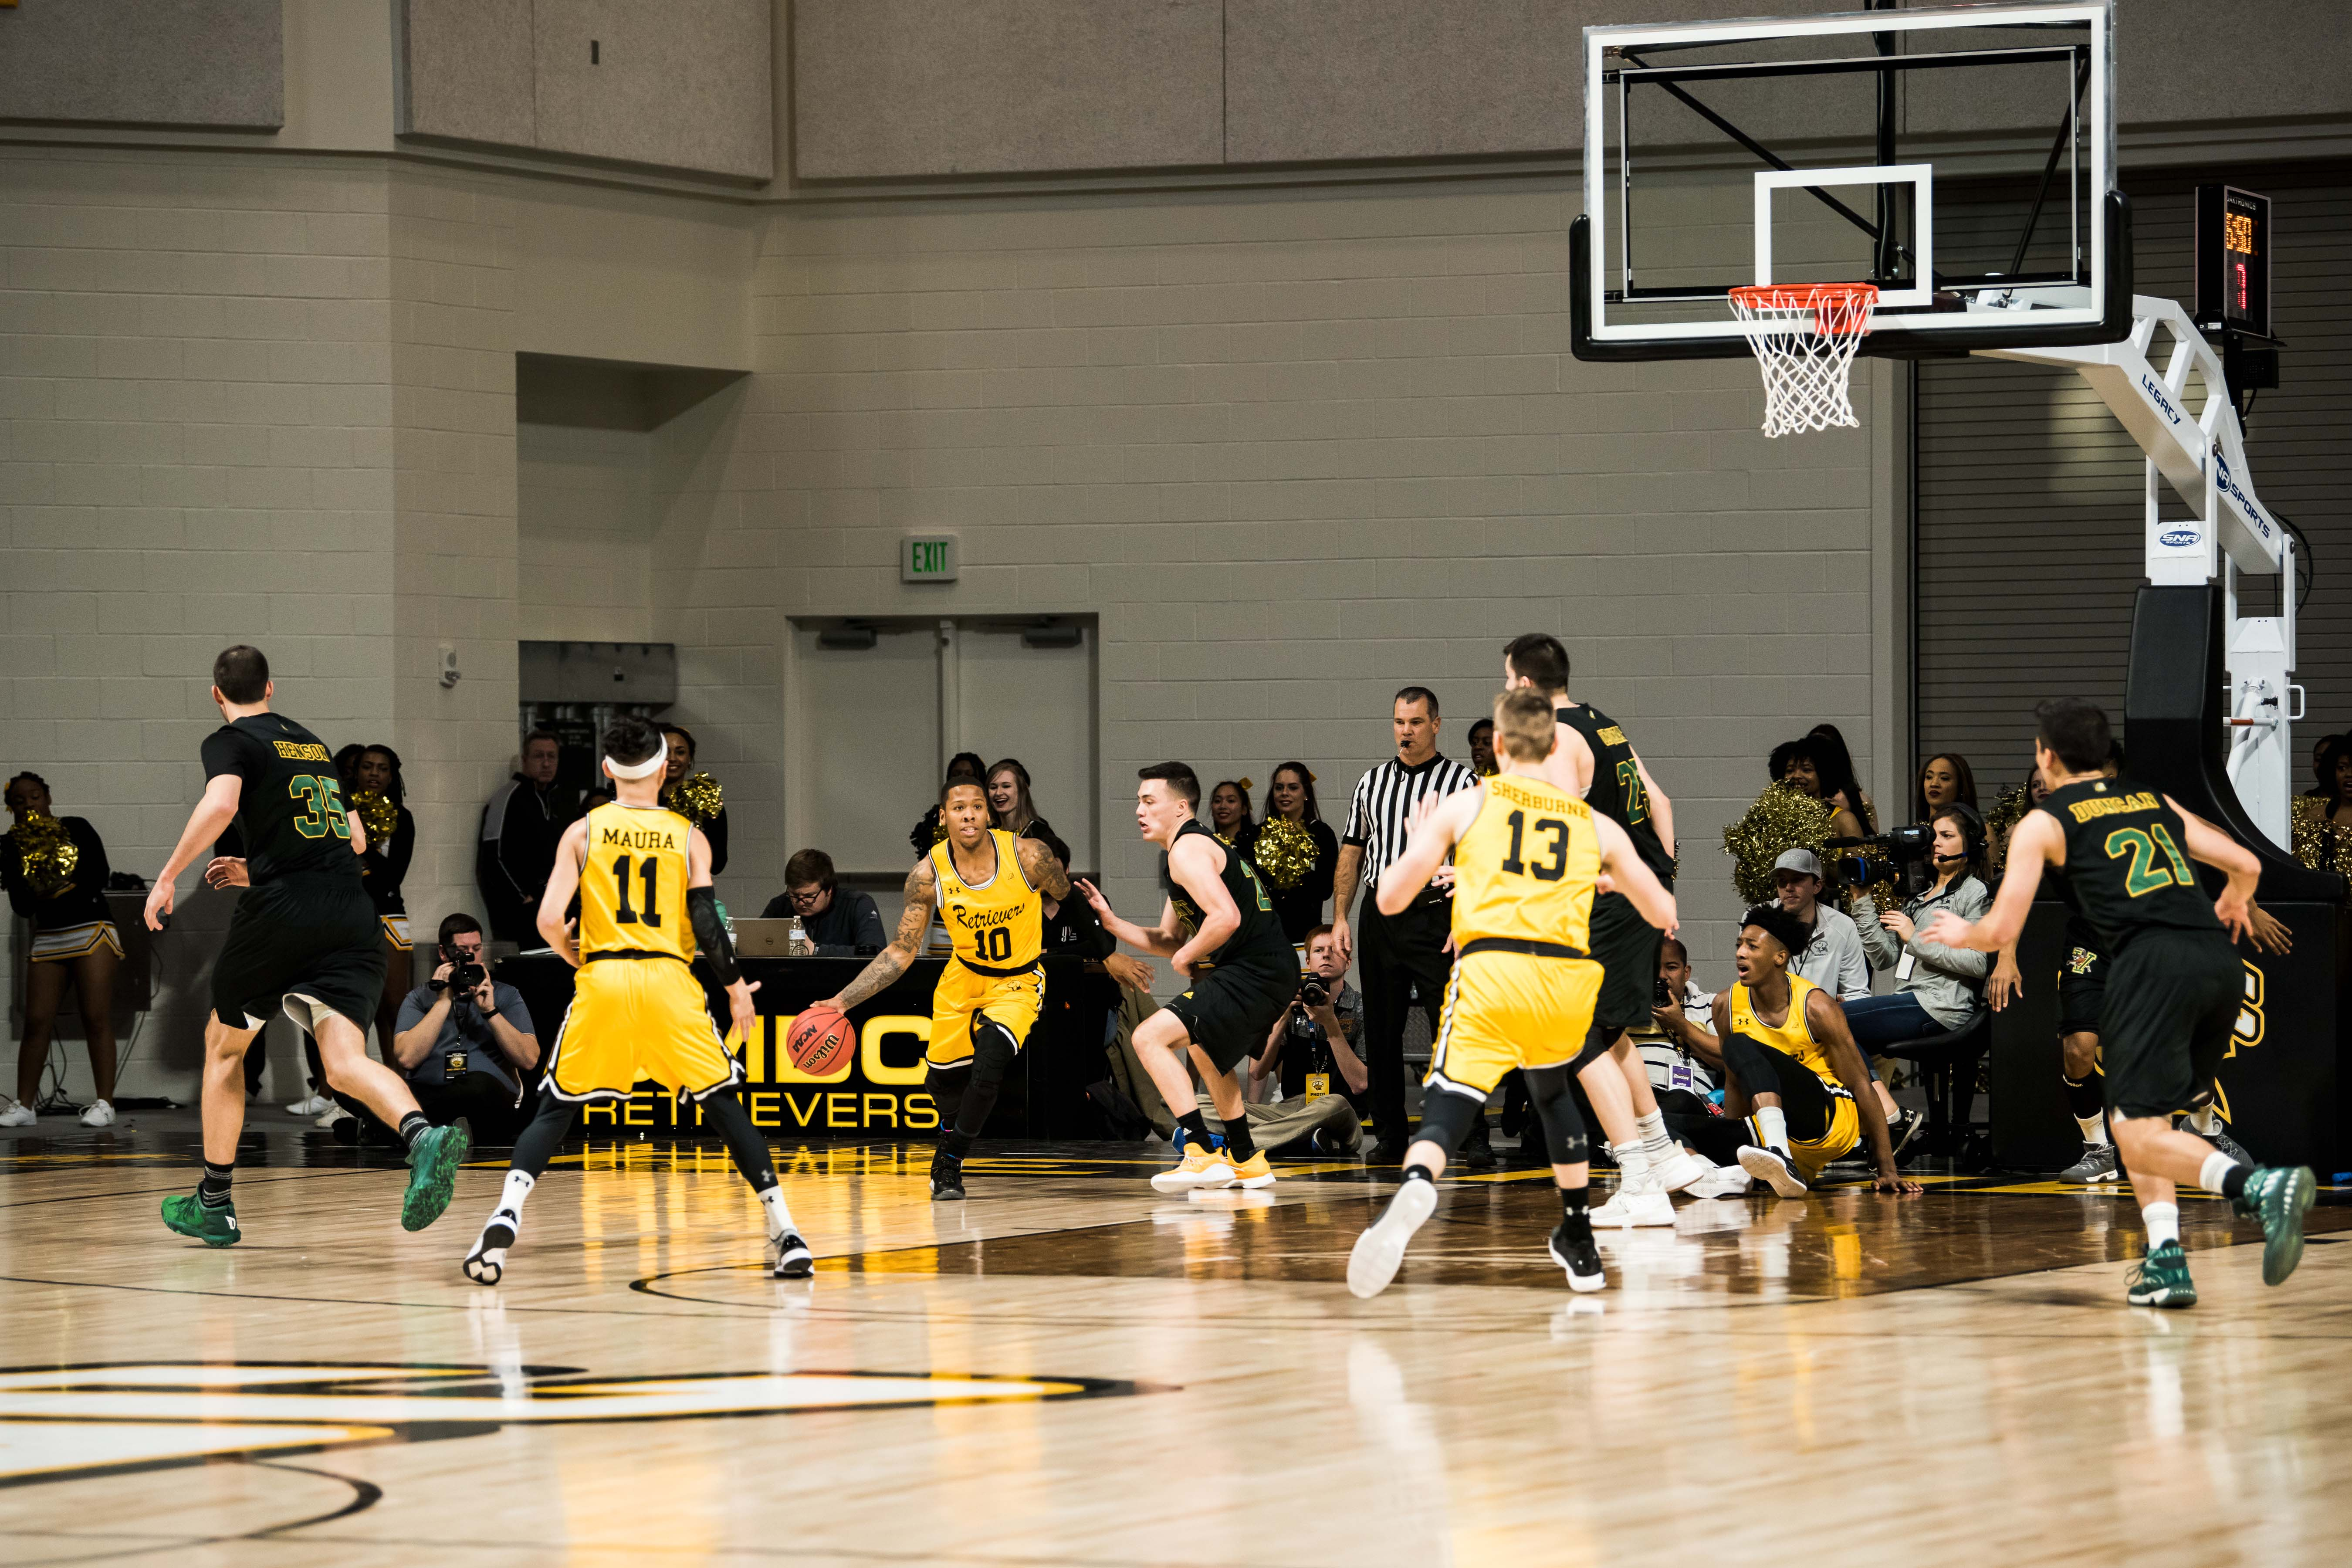 UMBC basketball players play game in event center